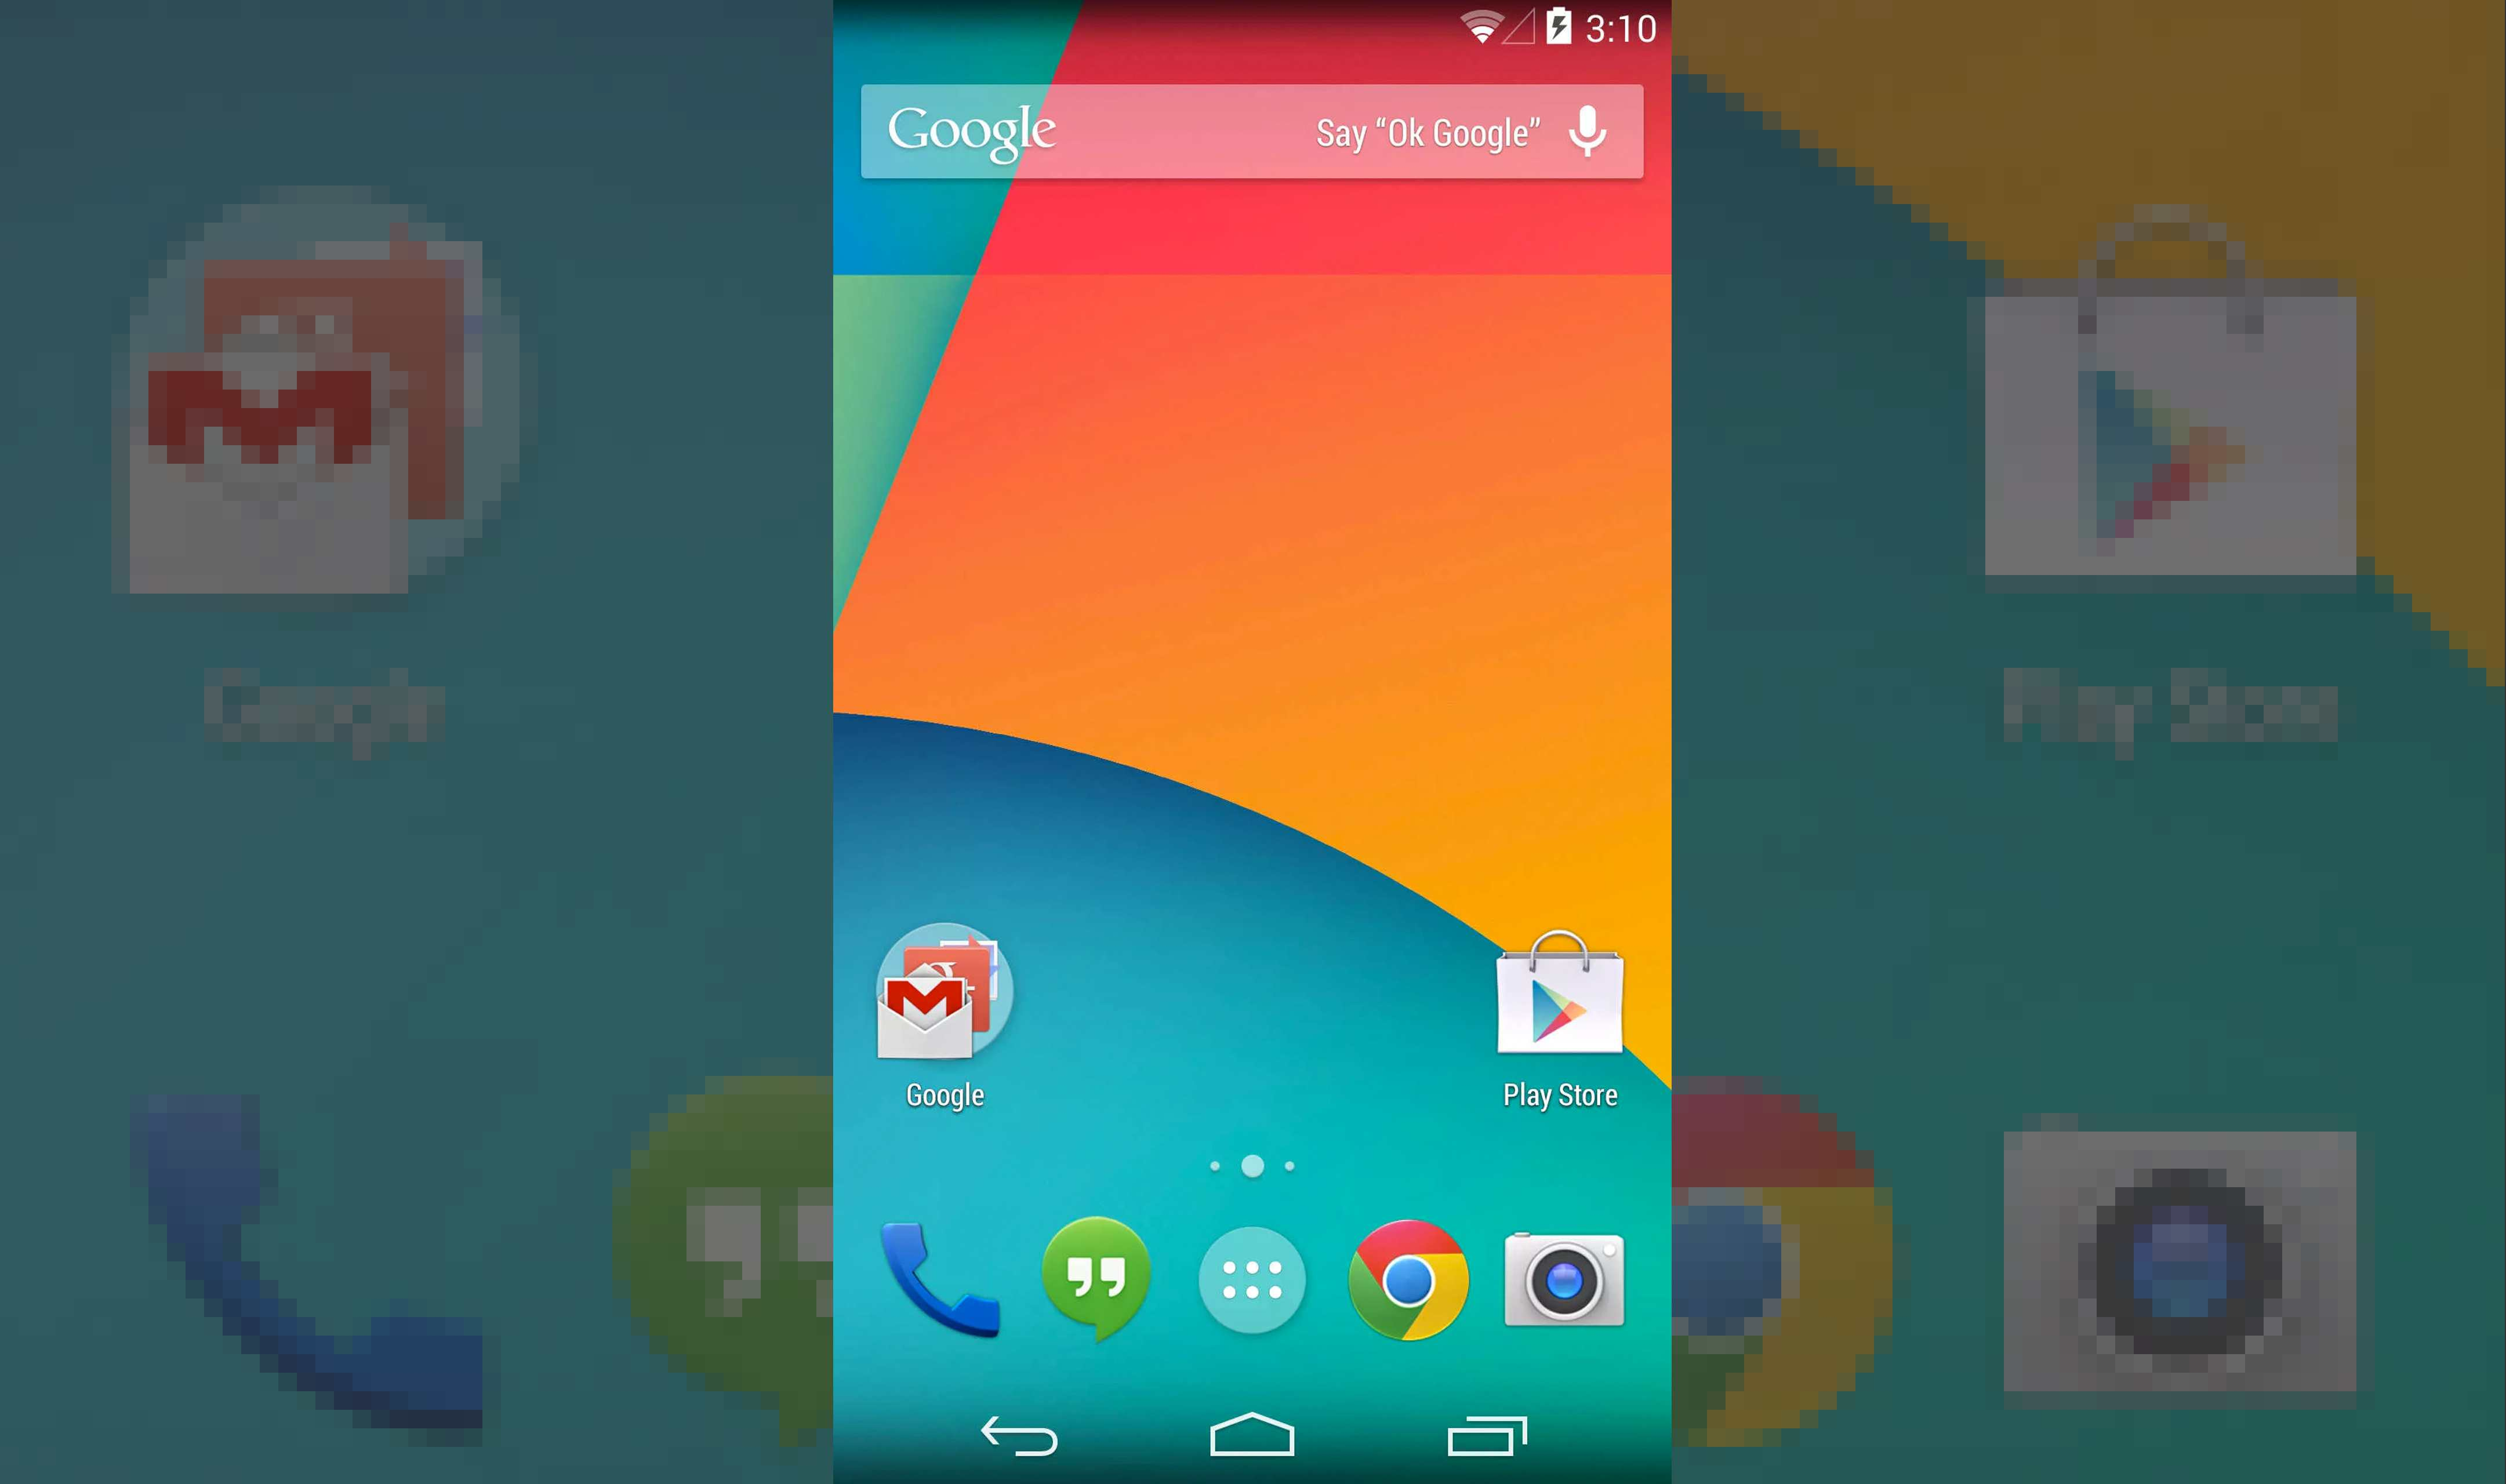 play store download for android 4.4.2